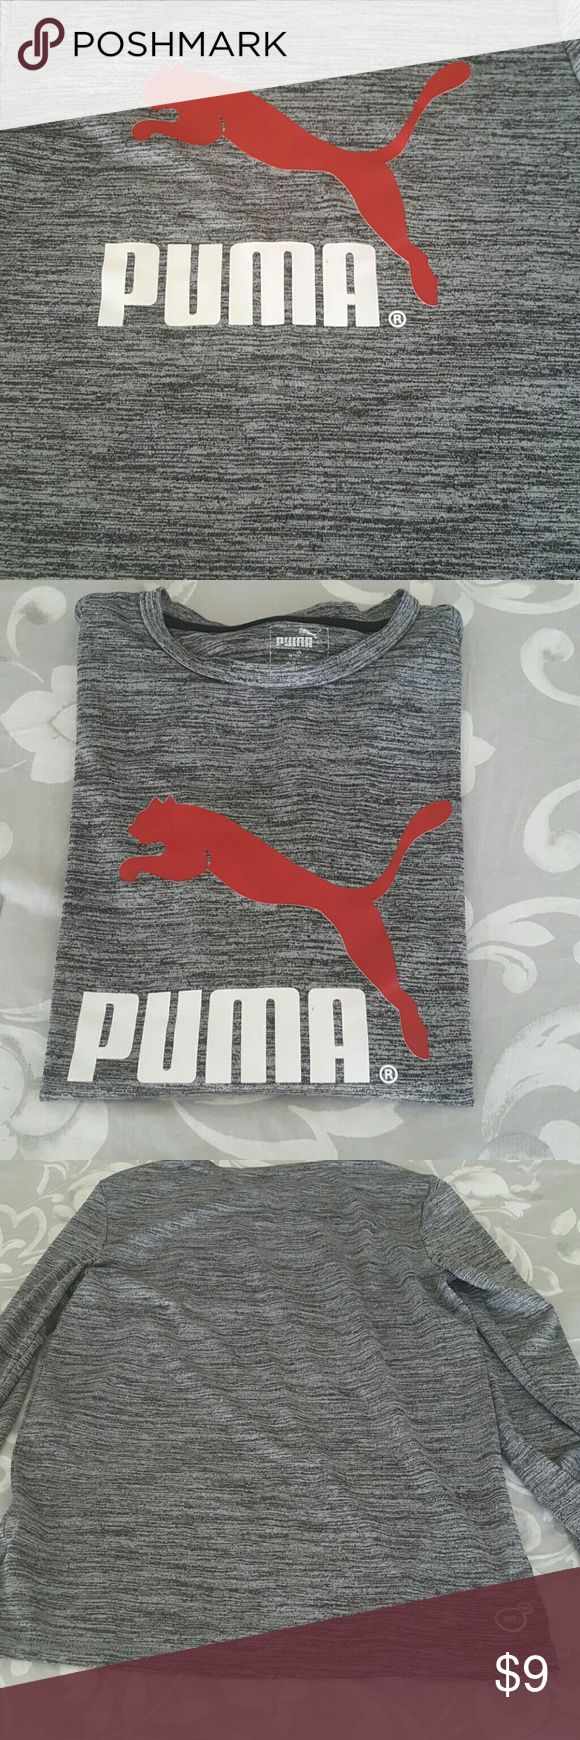 Puma shirt Gently used,  no pilling, holes or stains light weight hearhered grey puma shirt. Excellent for the upcoming Spring soccer season. Puma Shirts & Tops Tees - Long Sleeve